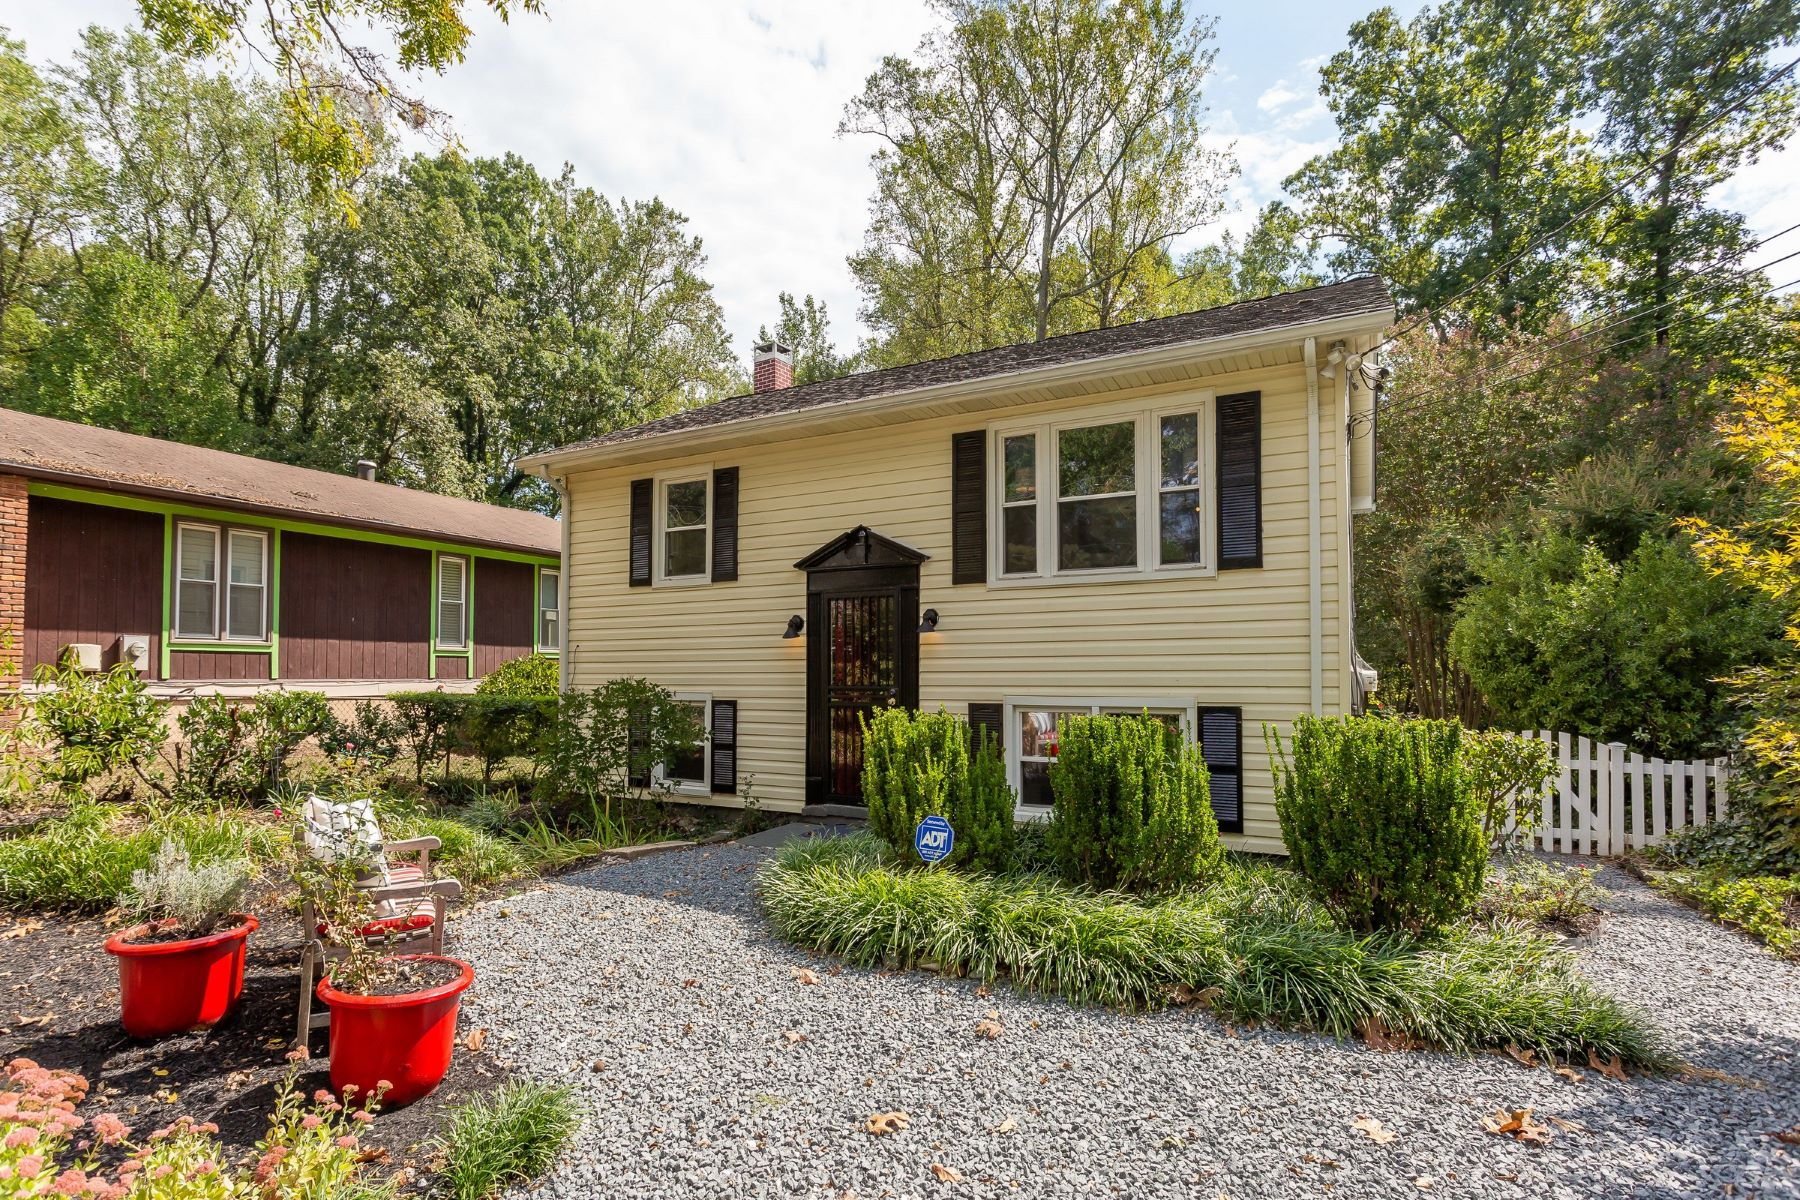 Property for Sale at Designed for Living and Entertaining 2947 Edgewater Drive, Edgewater, Maryland 21037 United States